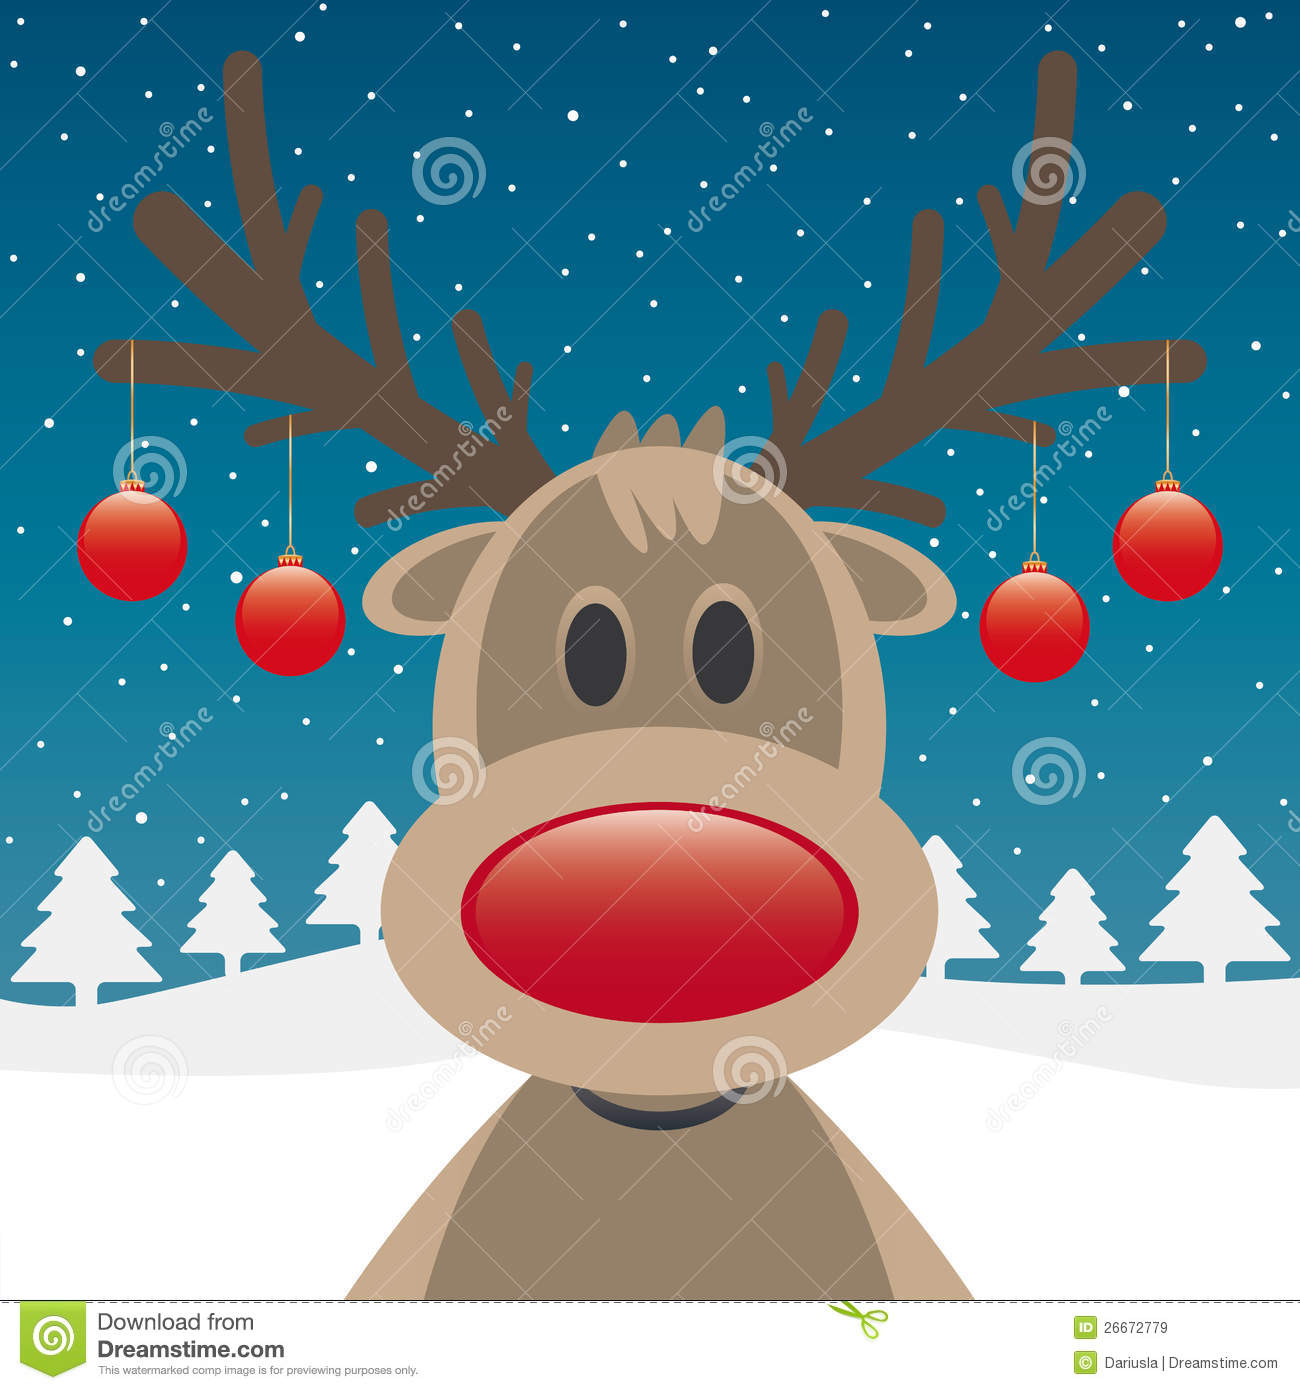 Reindeer Red Nose And Christmas Balls Royalty Free Stock Images ...